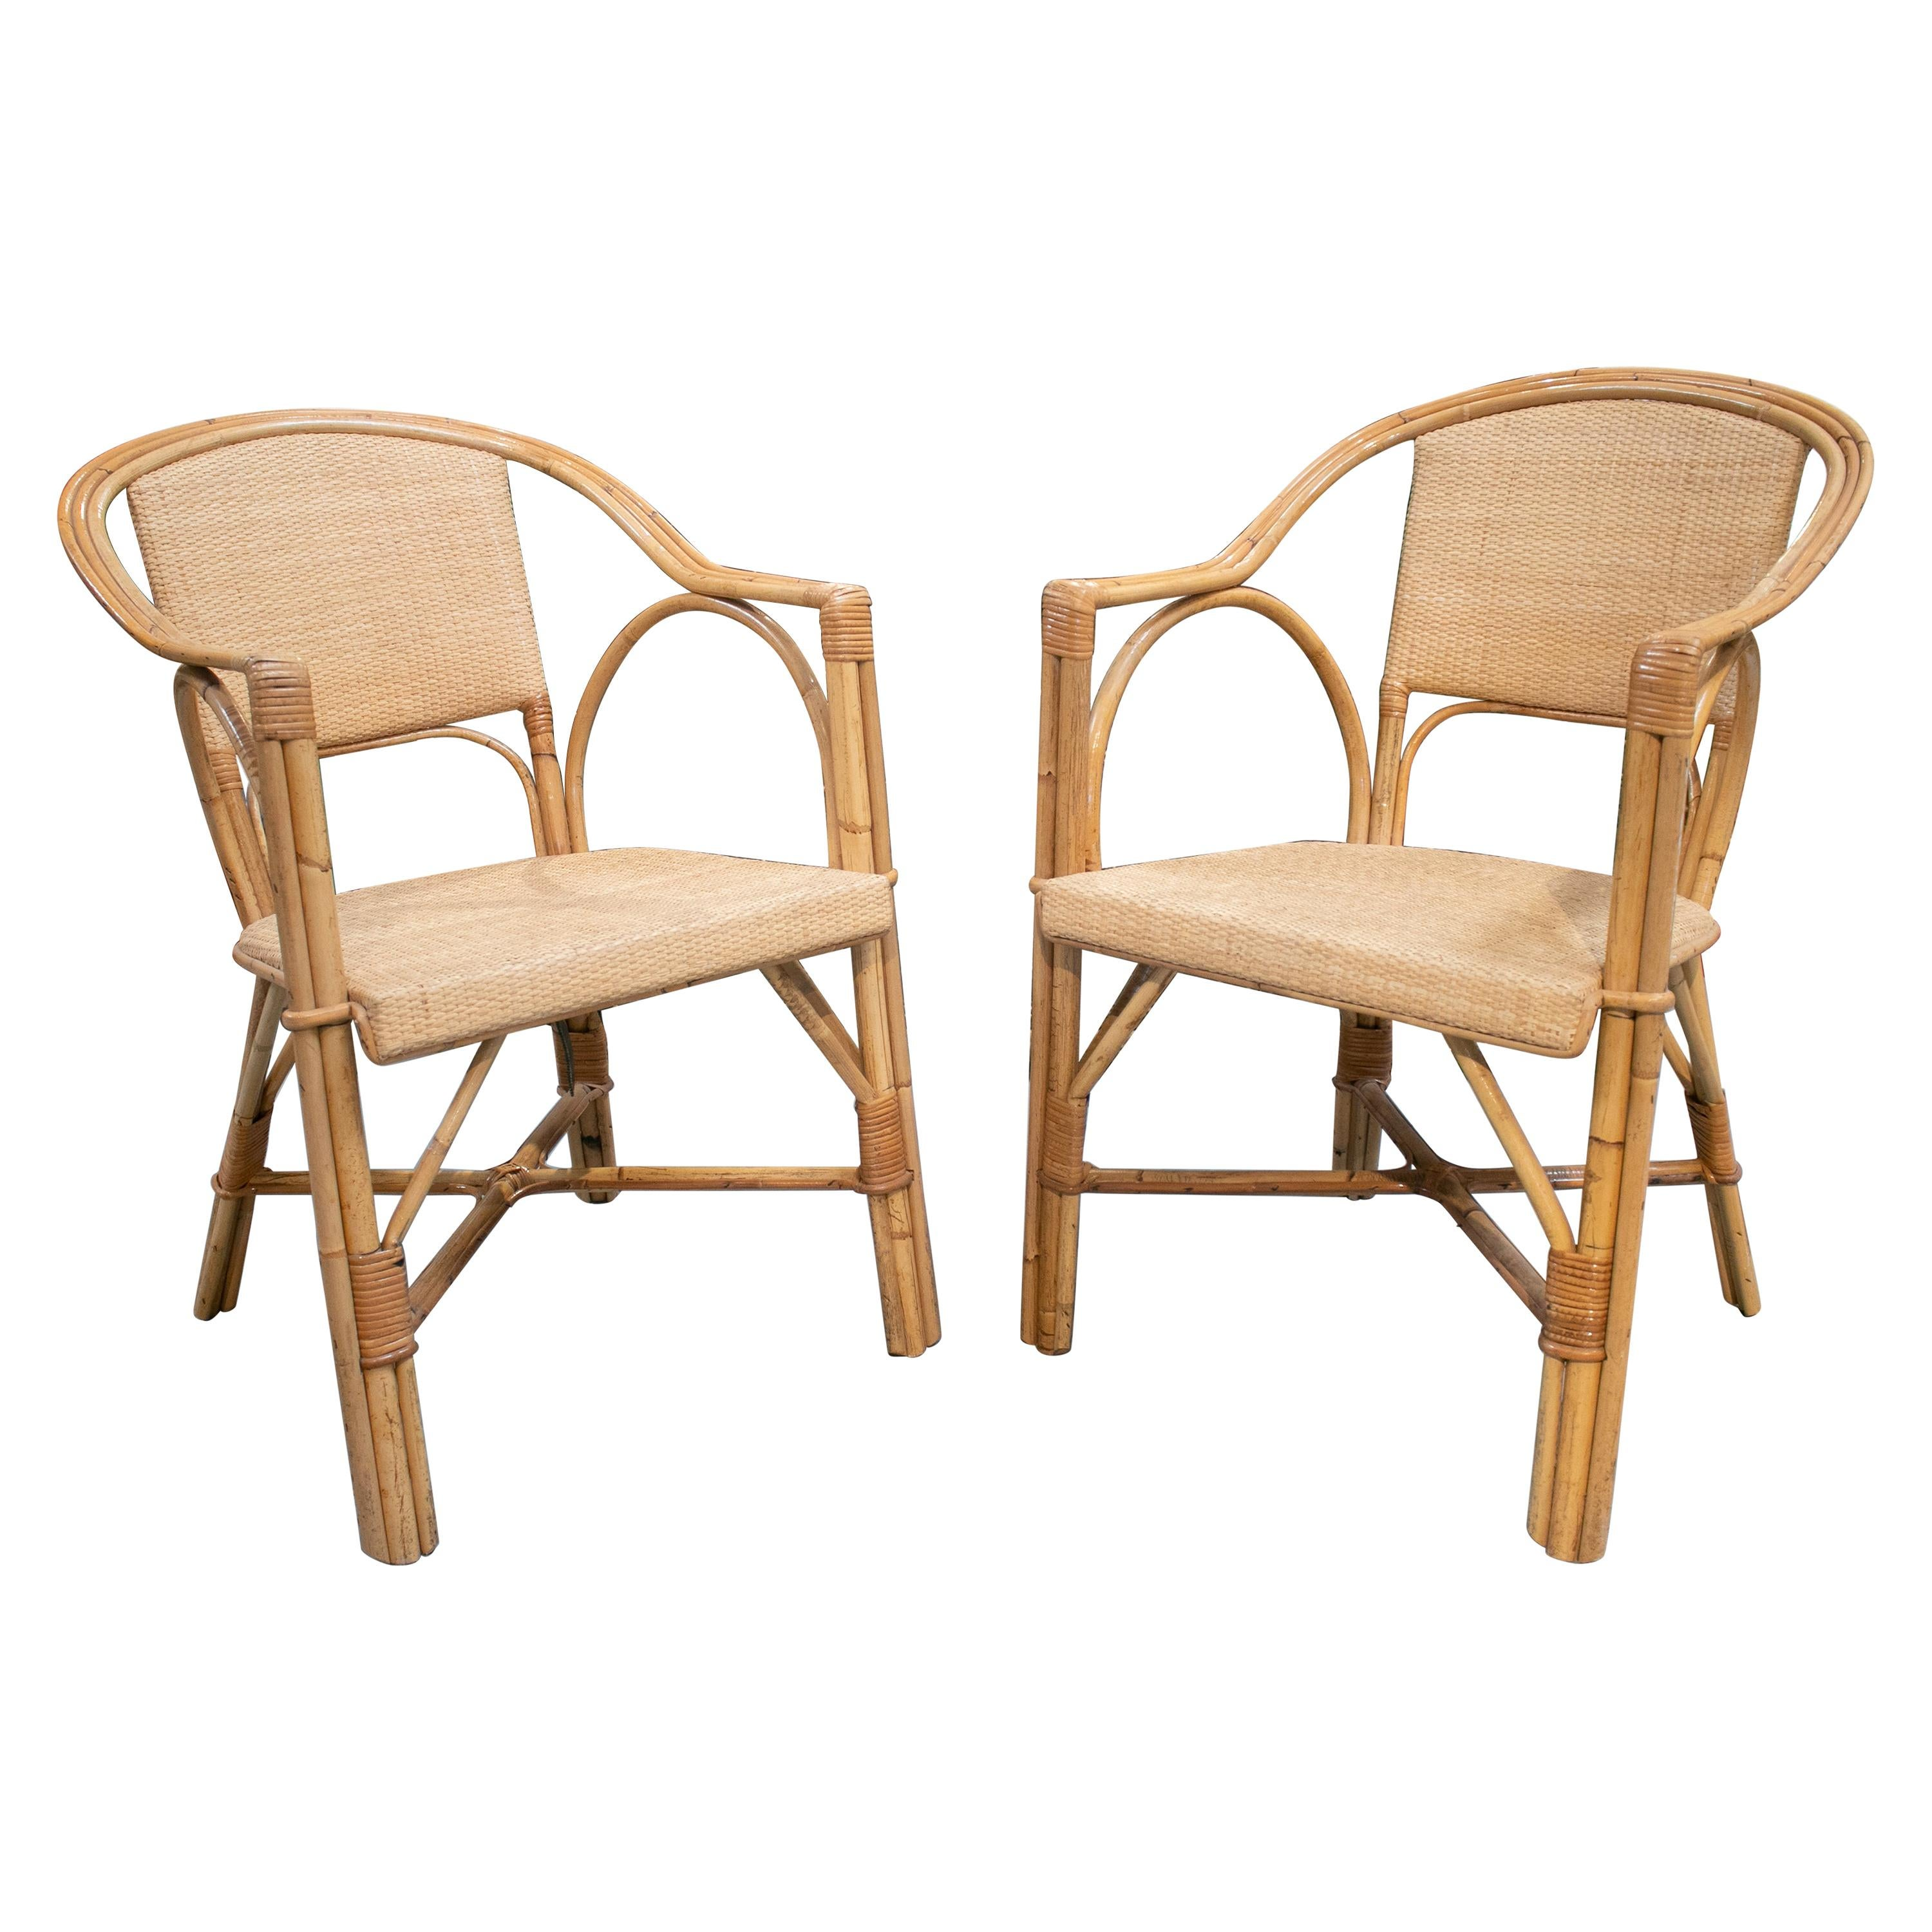 1980s Spanish Pair of Bamboo and Rattan Armchairs